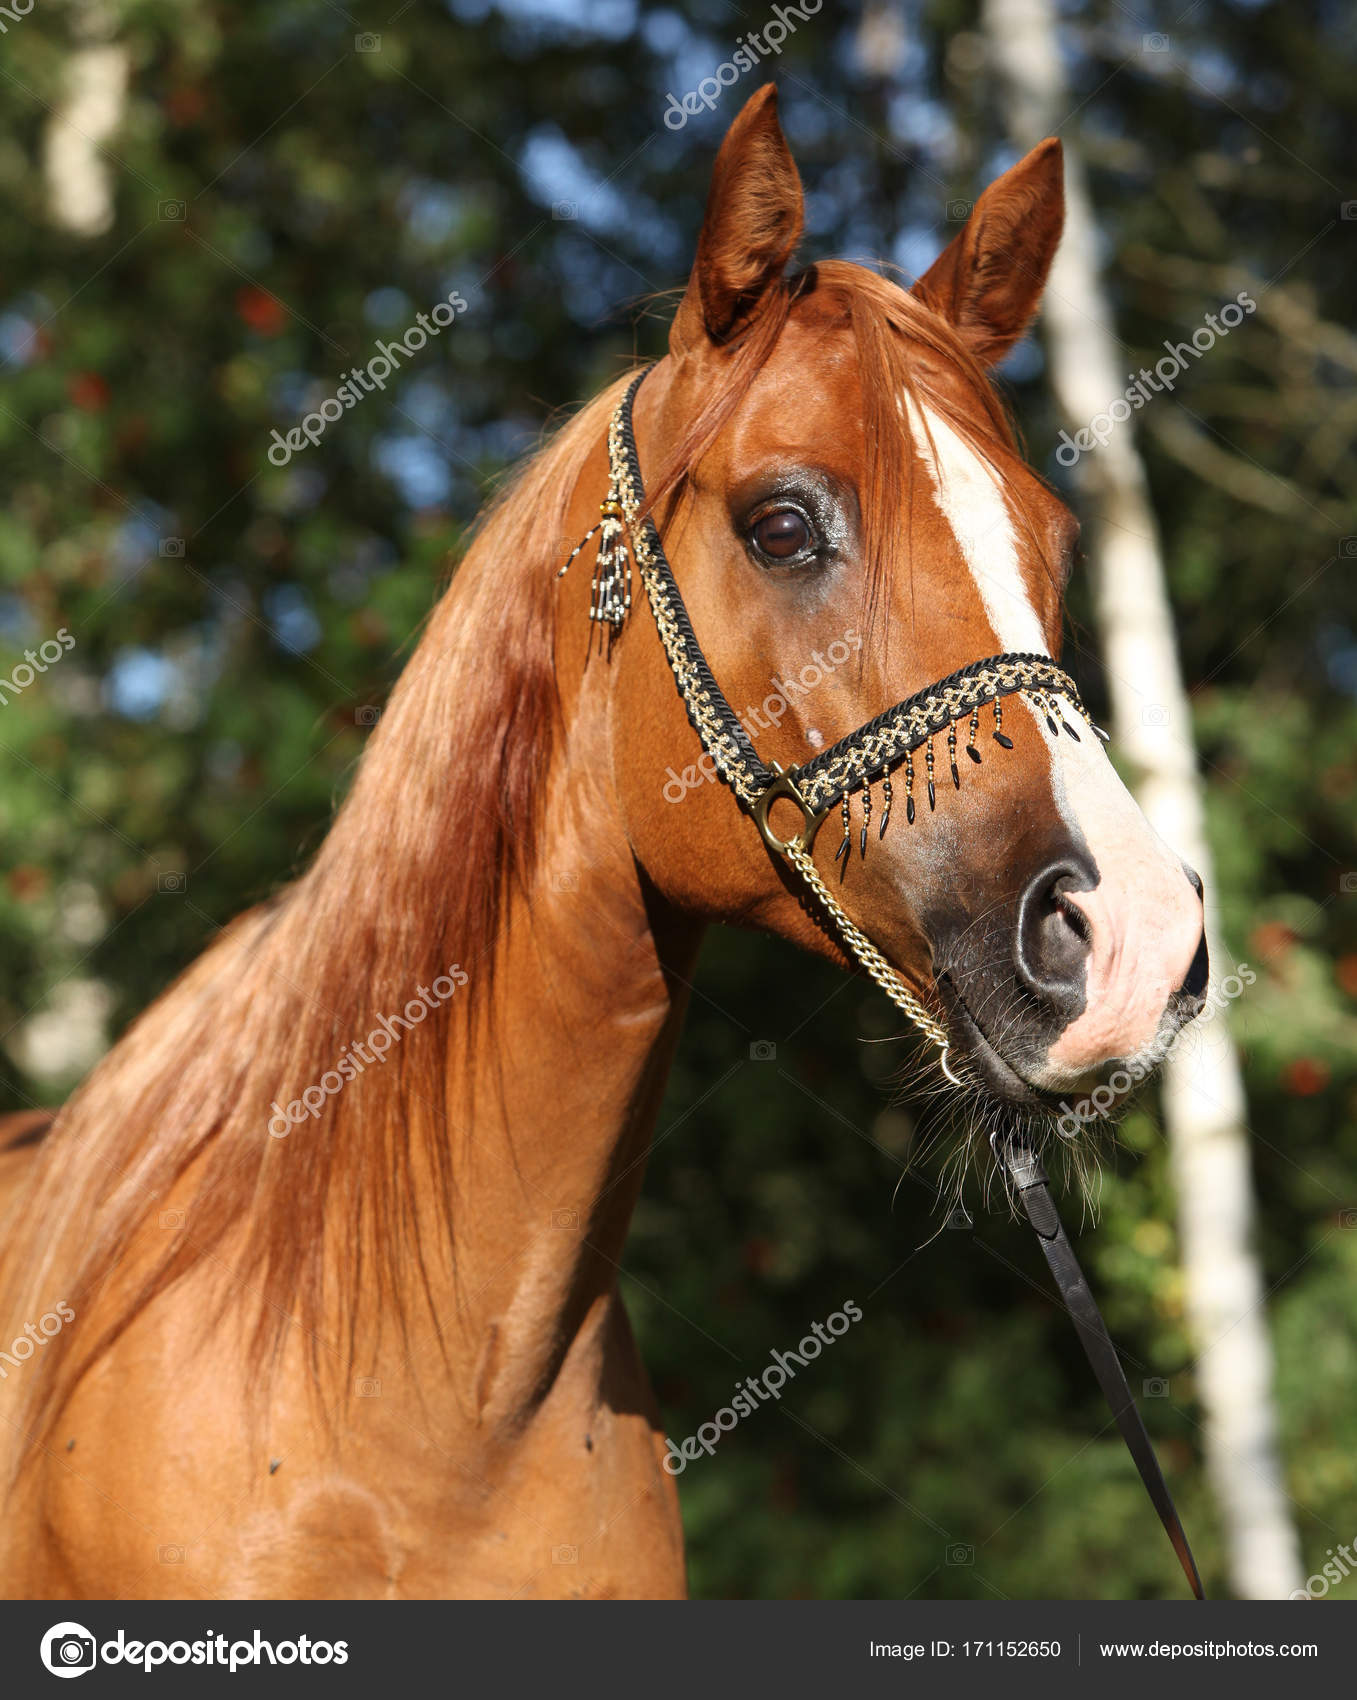 Amazing Arabian Horse With Beautiful Halter Stock Photo C Zuzule 171152650